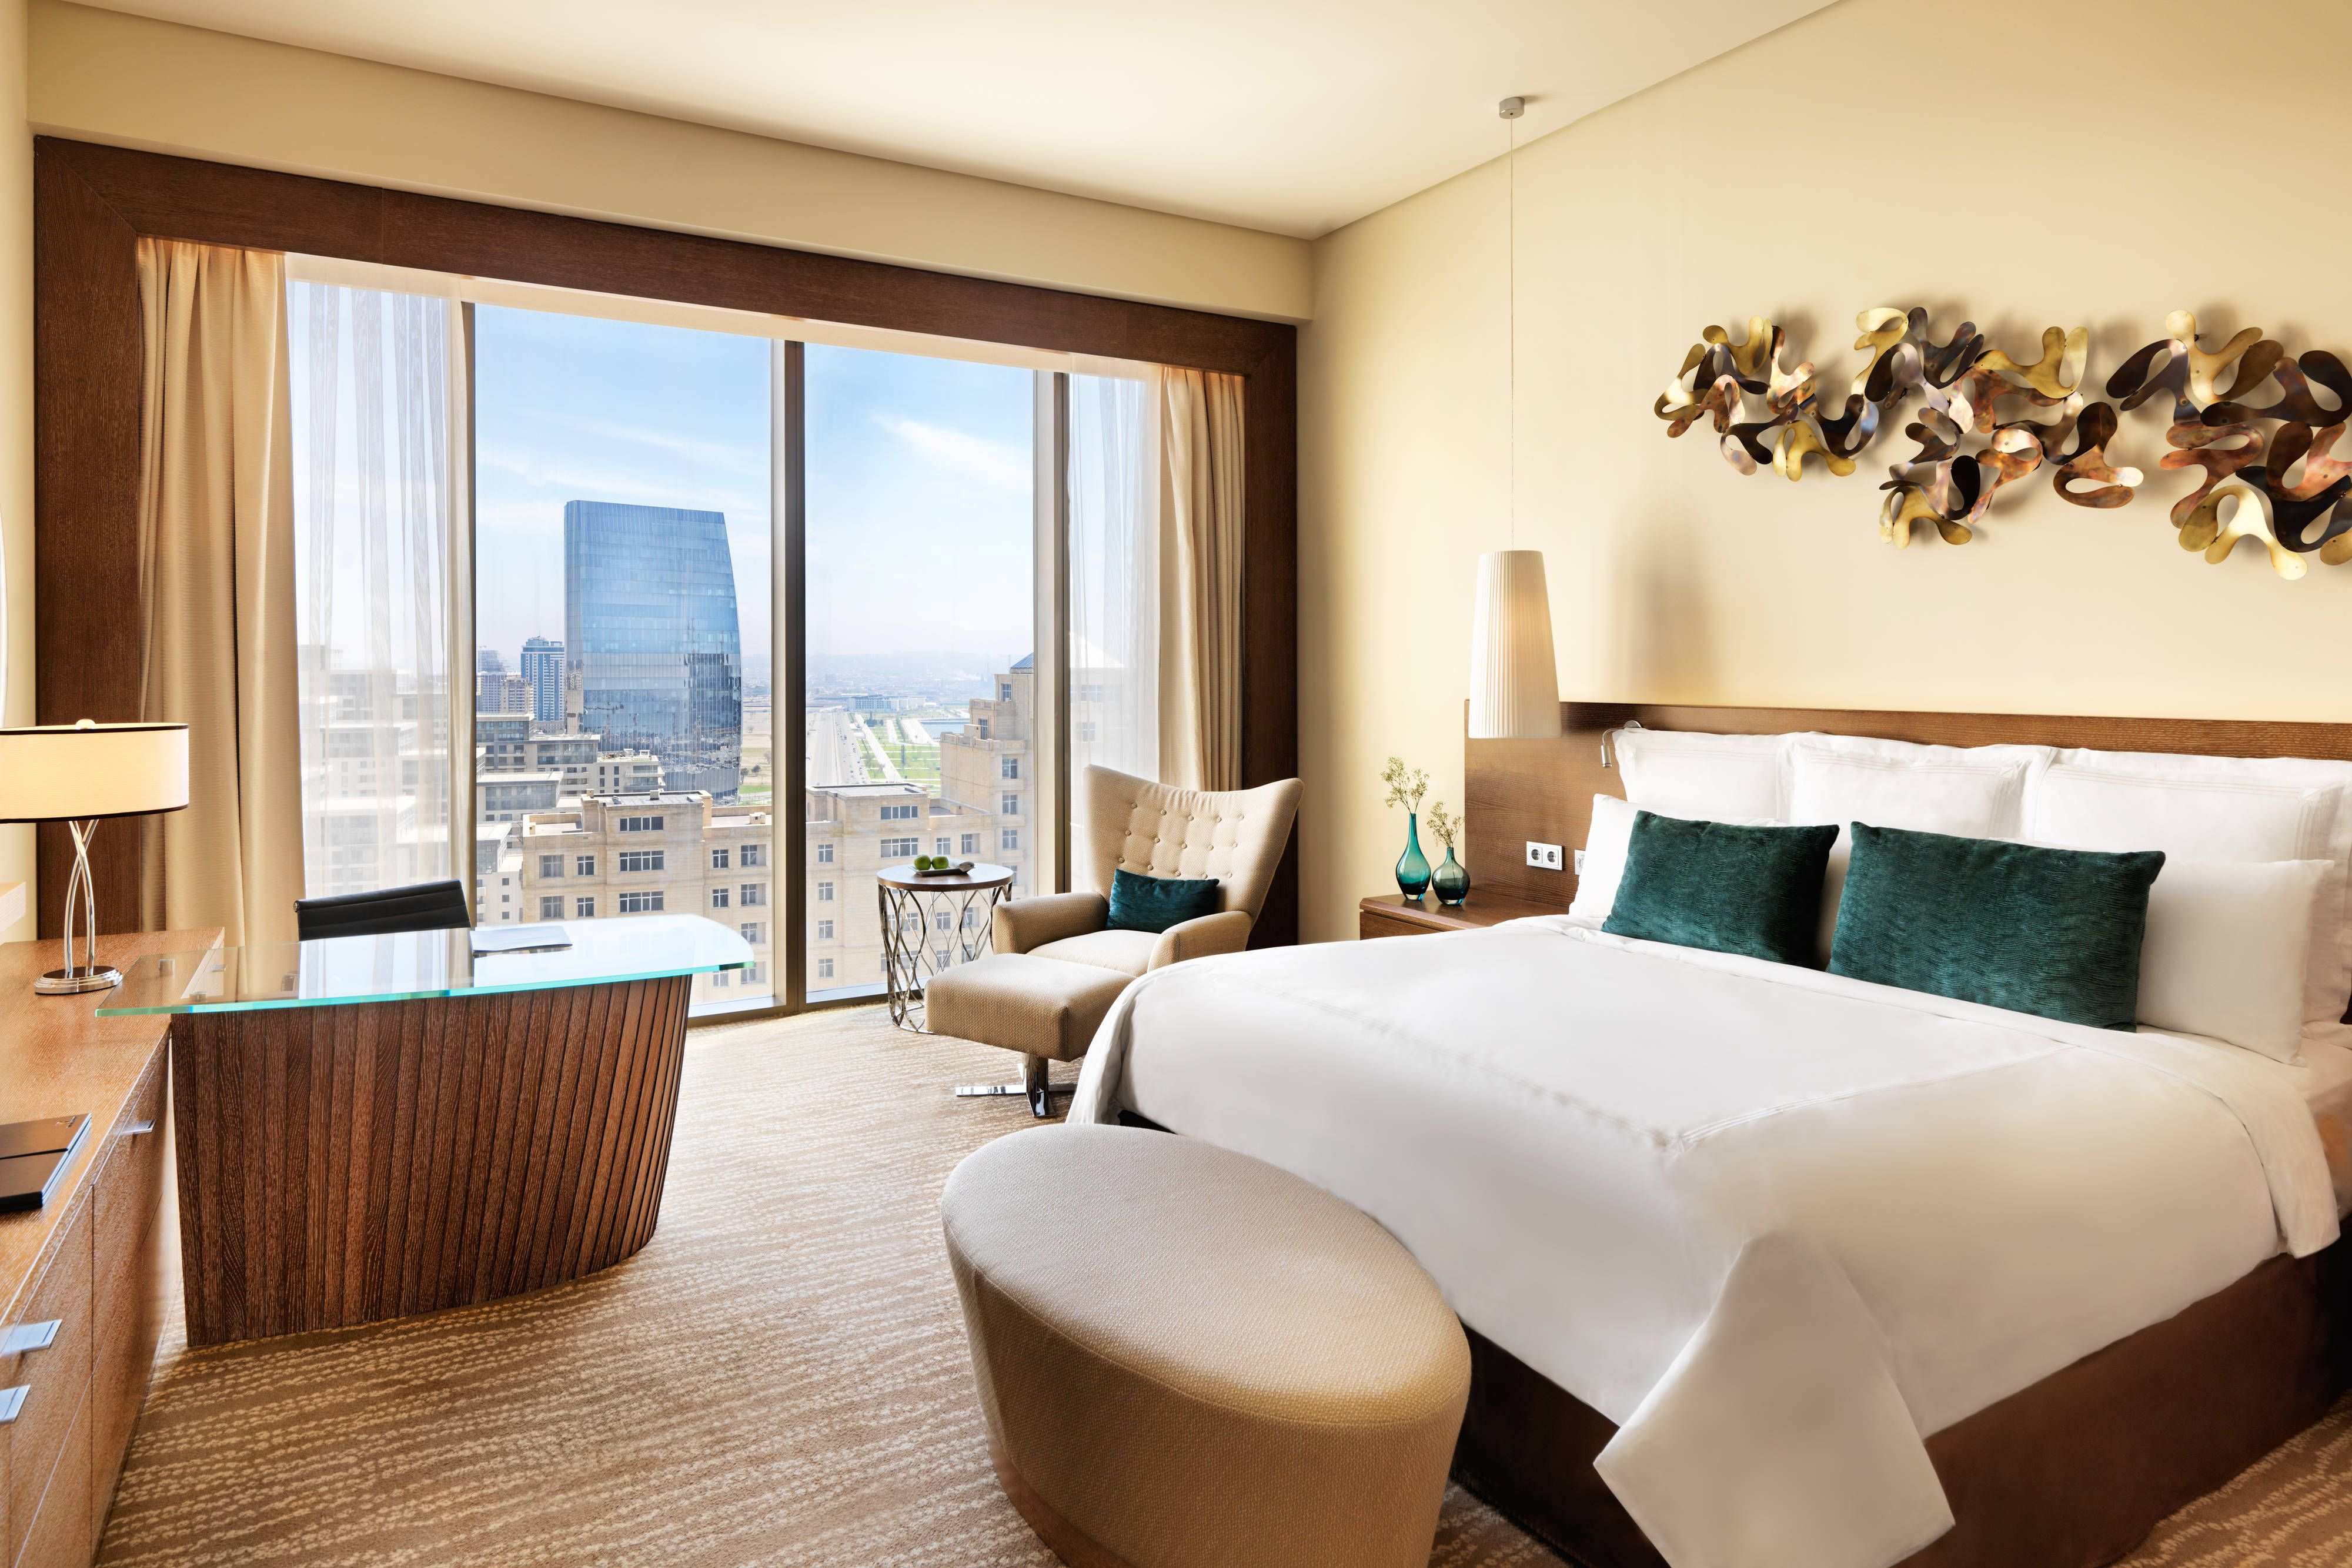 Jw Marriott Absheron Baku King Guest Room City View Visiting Traveling Rooms Luxury Accommodation Room Hotel